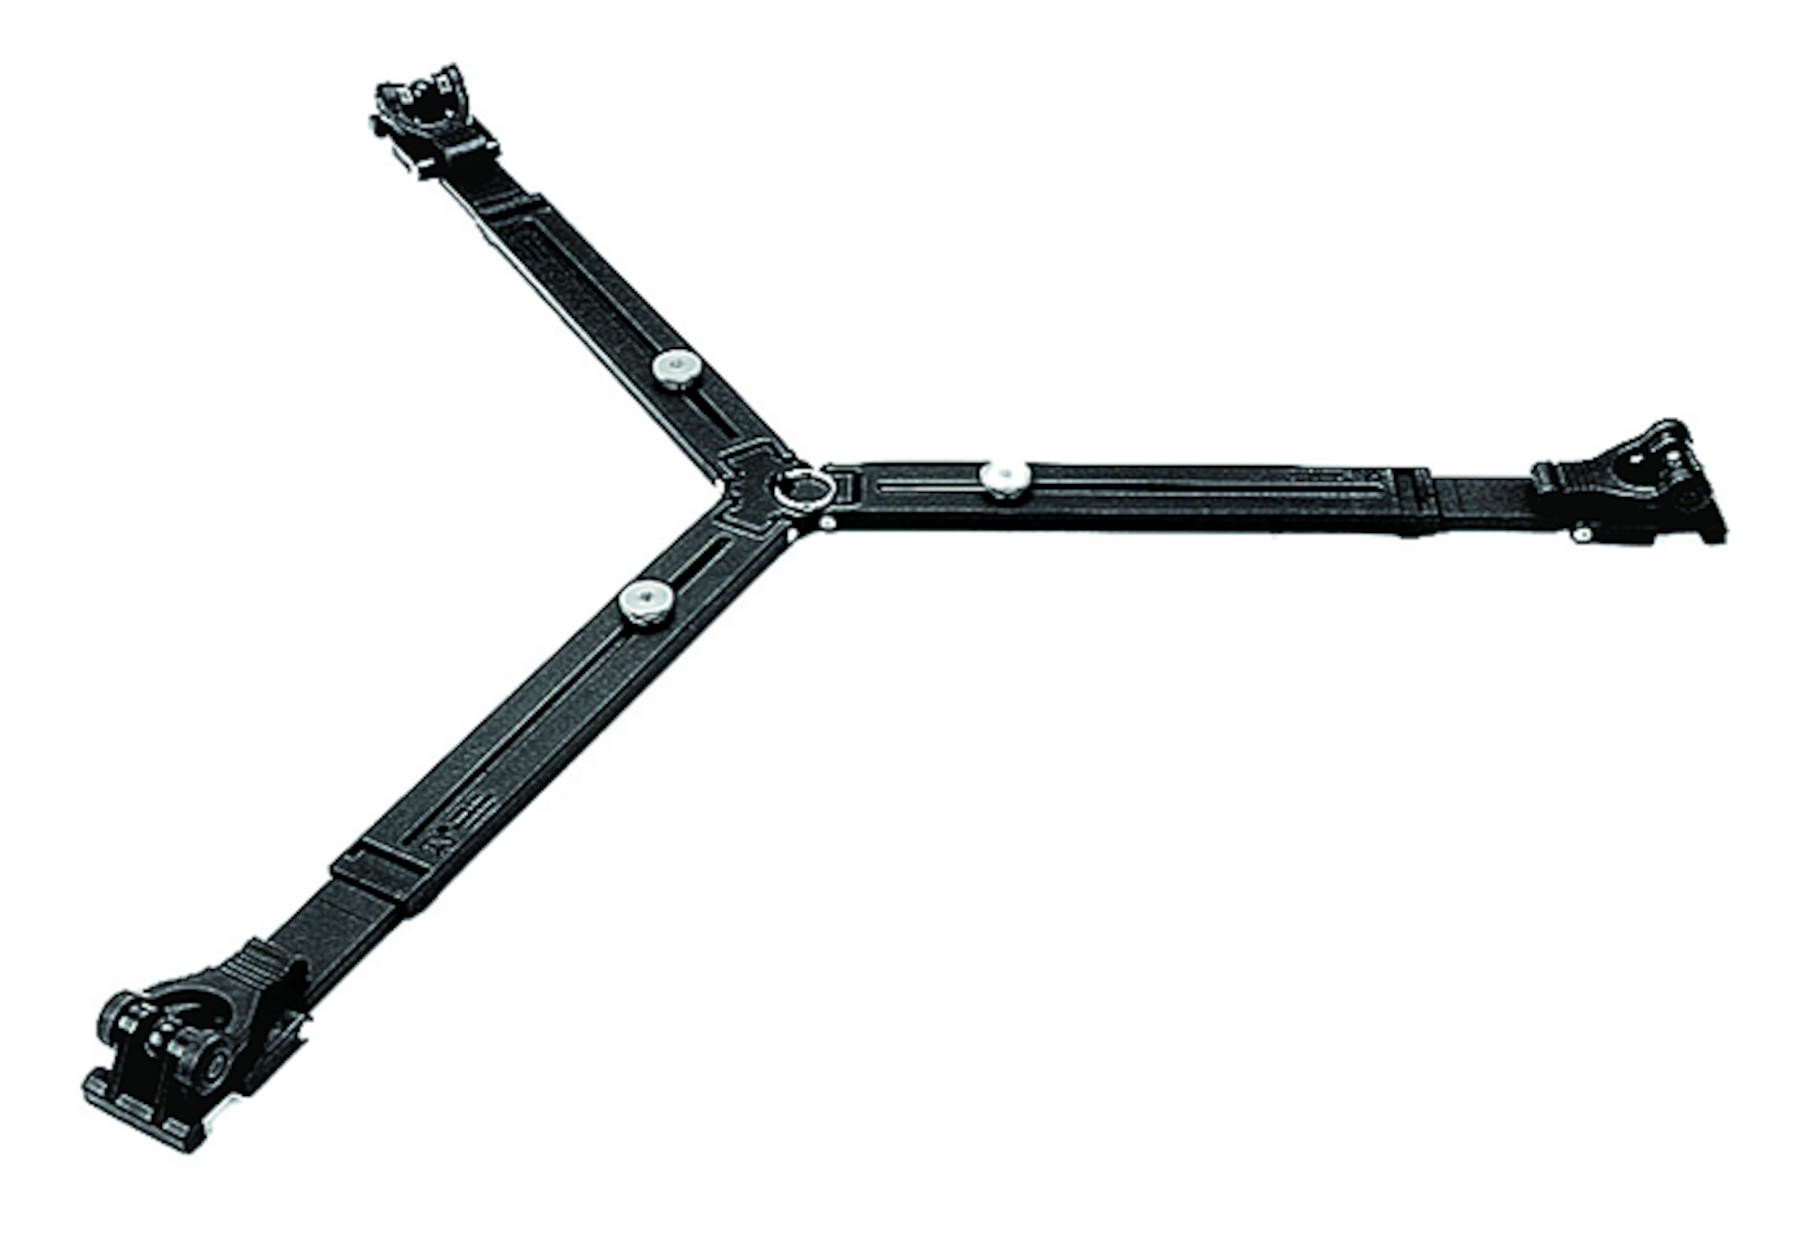 Manfrotto 165MV Tripod Spreader, Spiked Foot 165MV